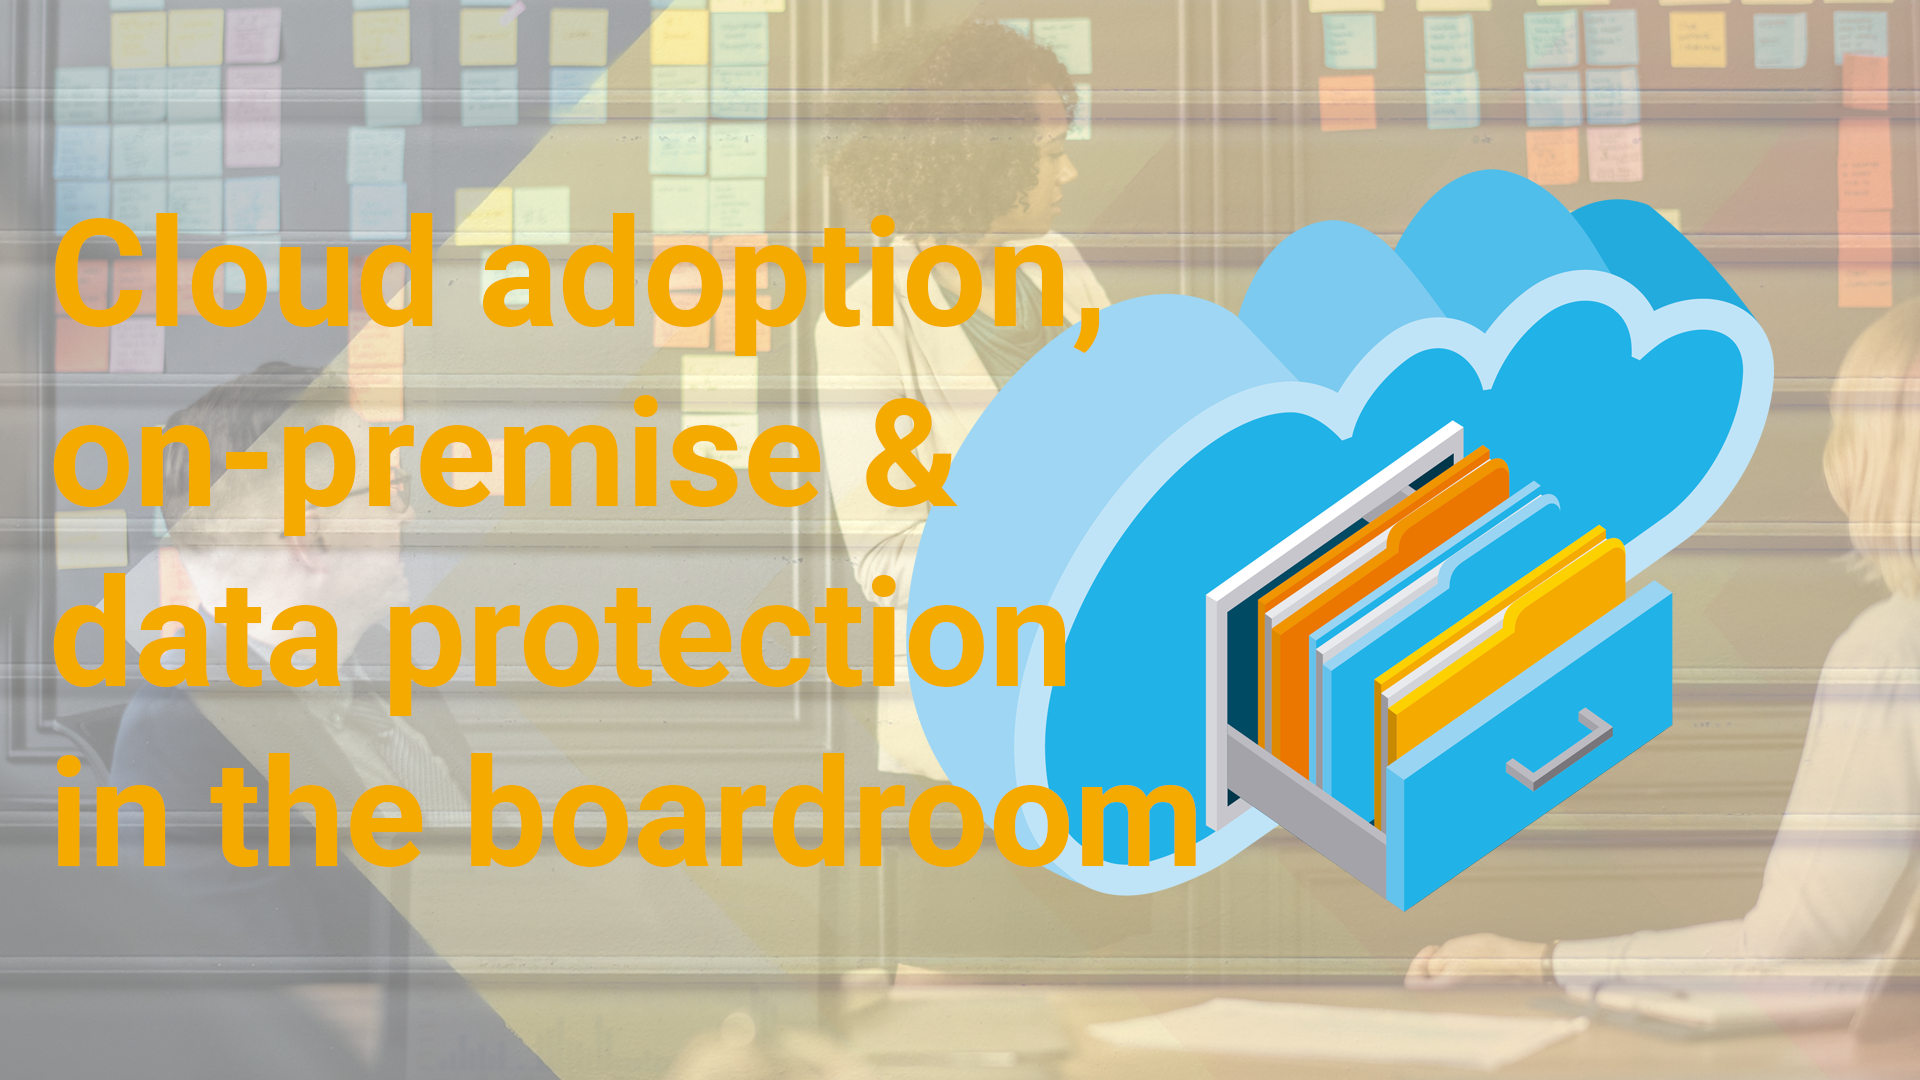 Cloud adoption, on-premise & data protection in the boardroom